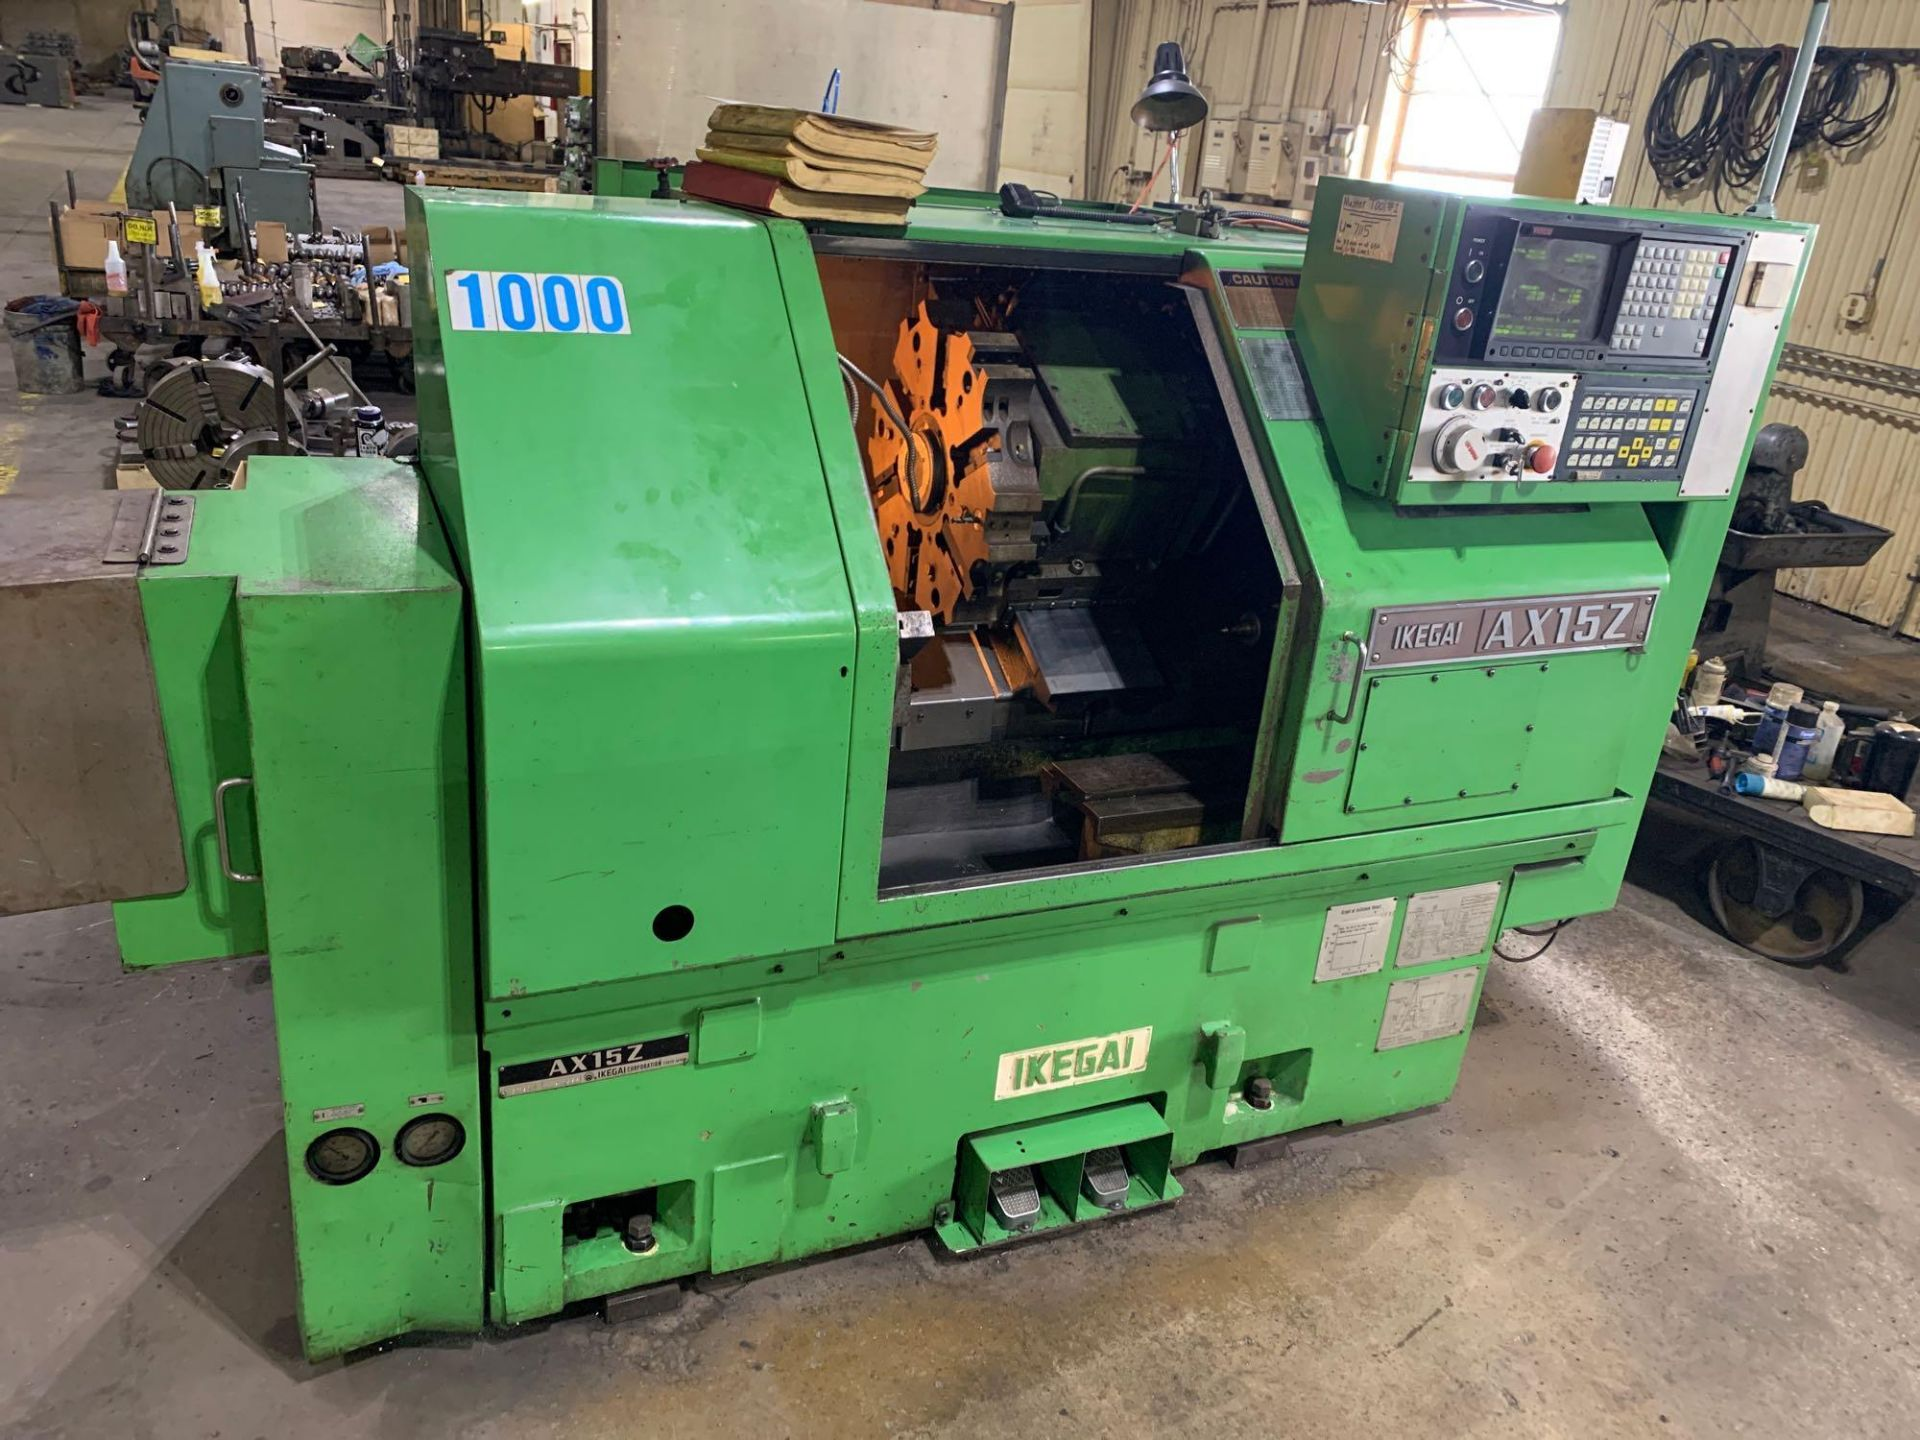 IKEGAI AX-15Z CNC Slant Bed Turning Center Serial Number: 50130V 2-Axis Machine Fanuc 10T Control 12 - Image 2 of 18